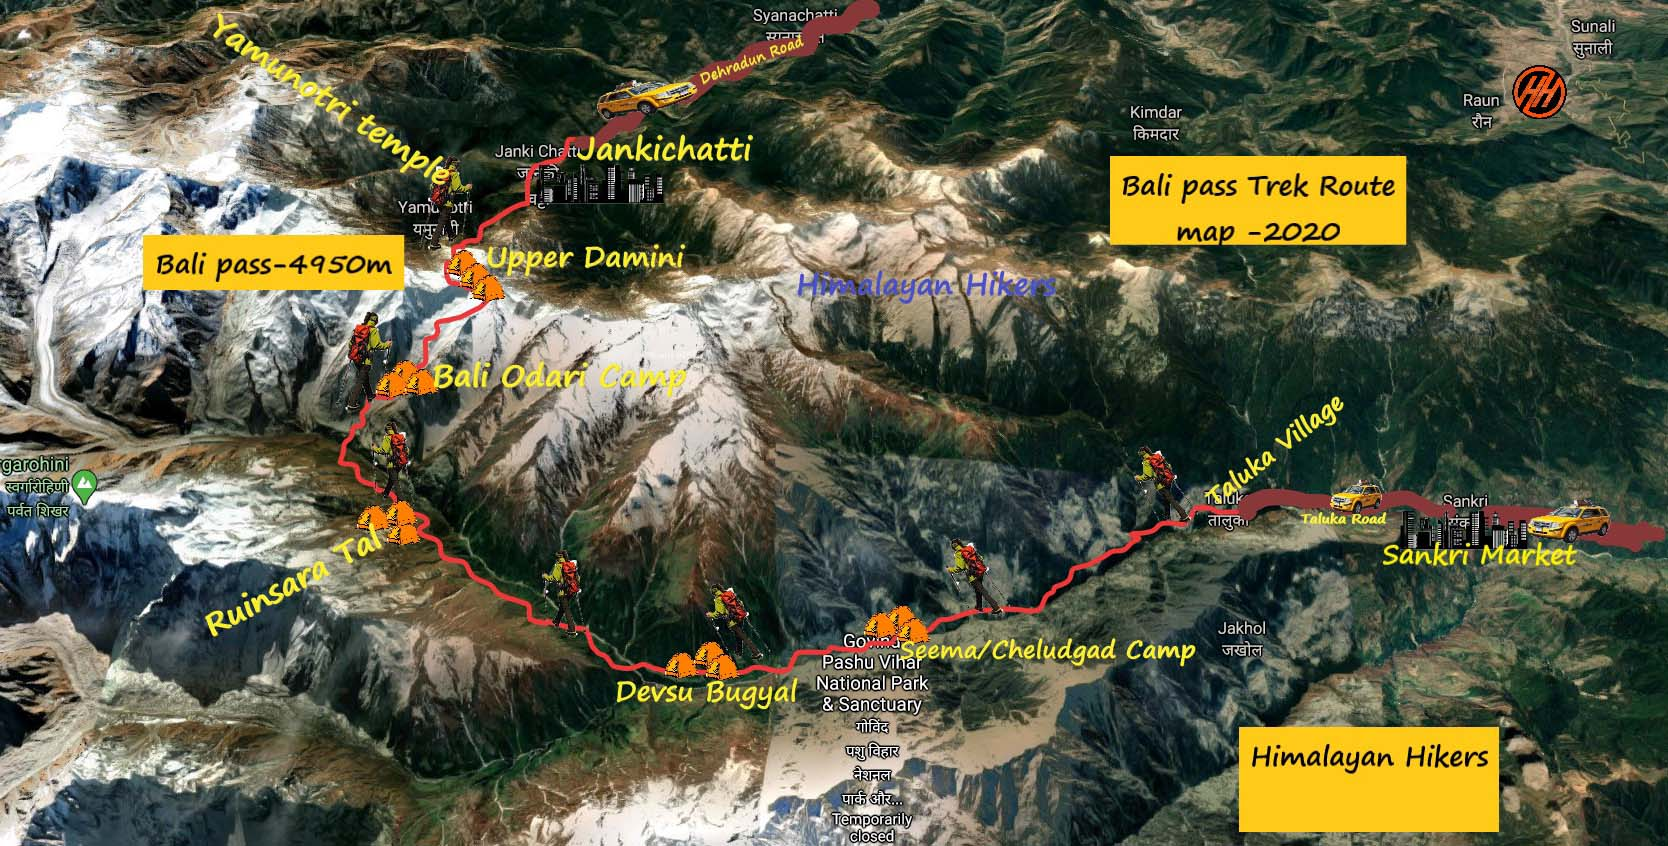 Bali Pass Trek Route Map